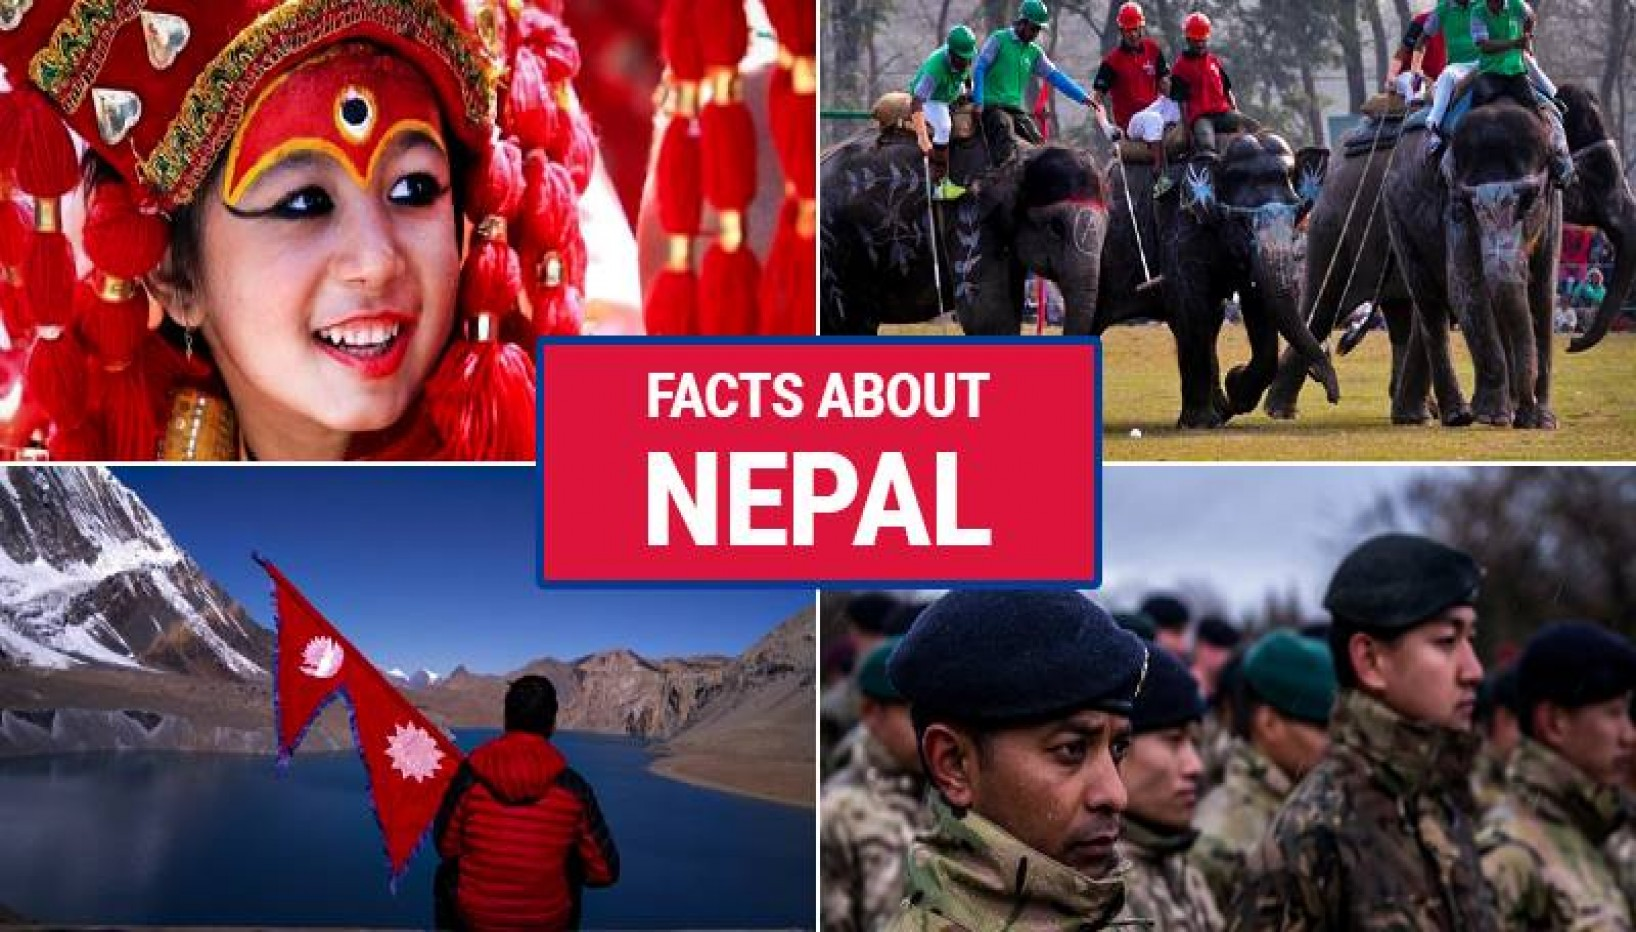 Here are 21 Facts About Nepal That You Might Not Know